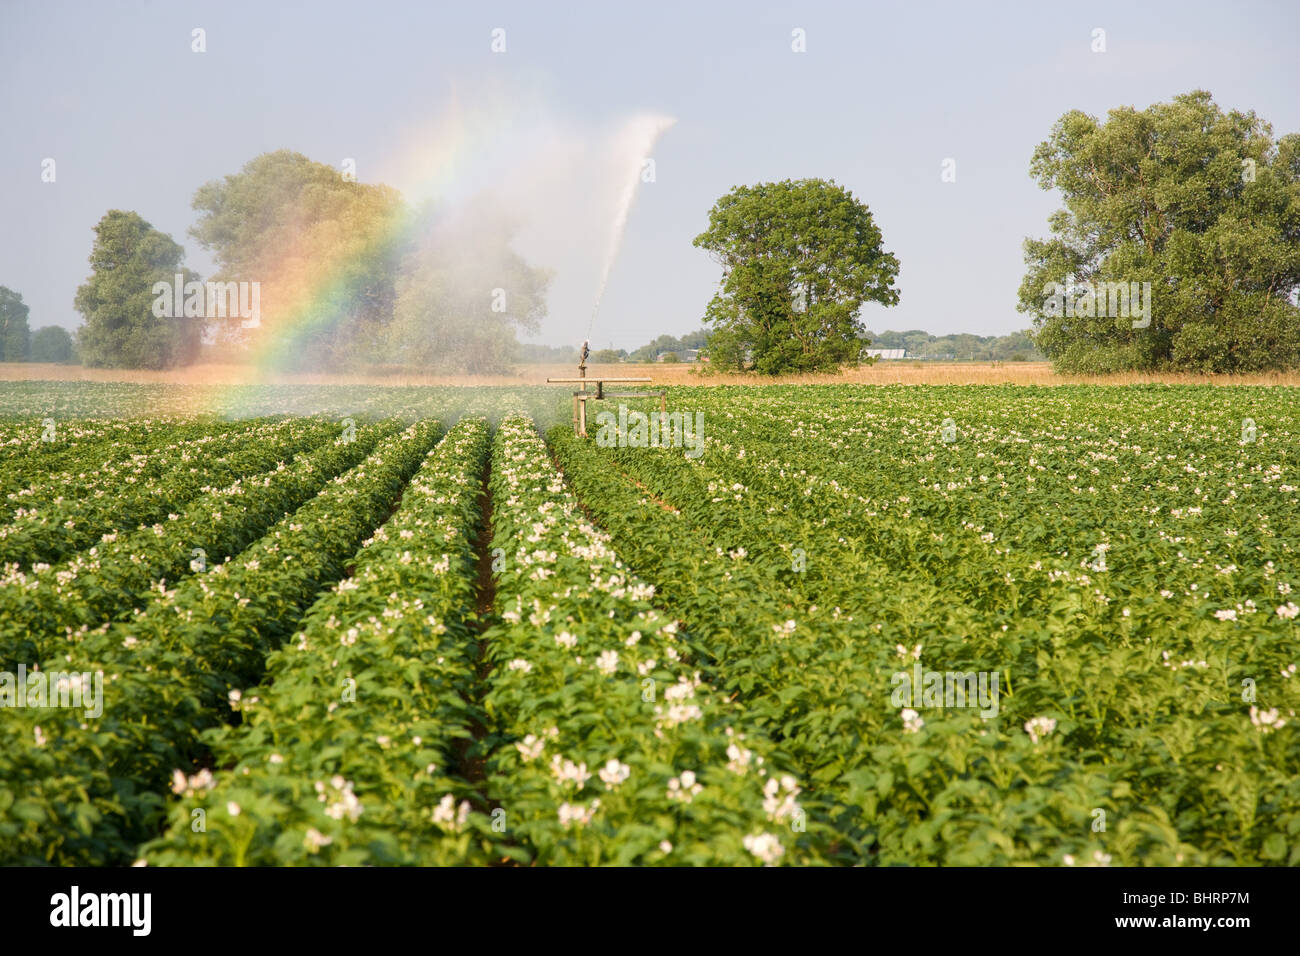 Irrigation Reel In A Potato Crop - Stock Image